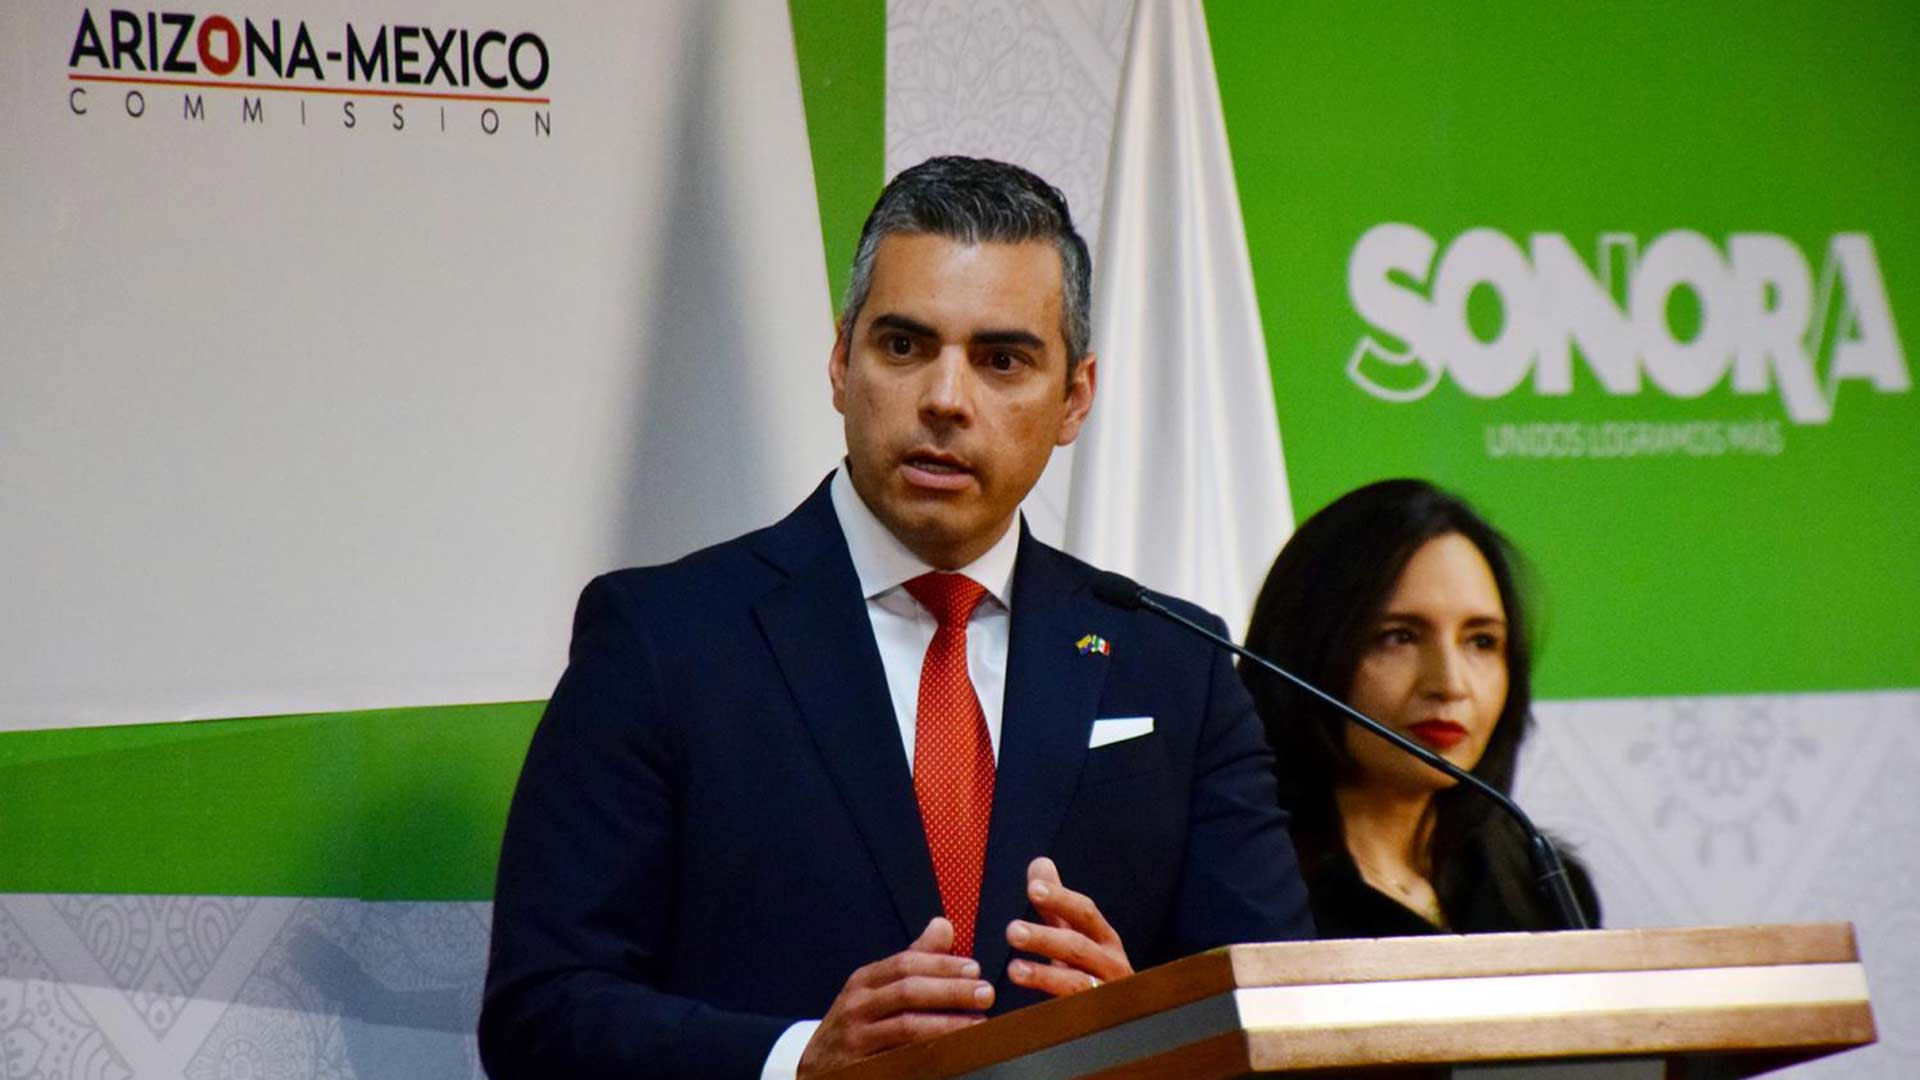 Juan Ciscomani talks about the Arizona-Mexico Commission's 60th Anniversary during a press conference in Hermosillo, Sonora, on April 29, 2019.